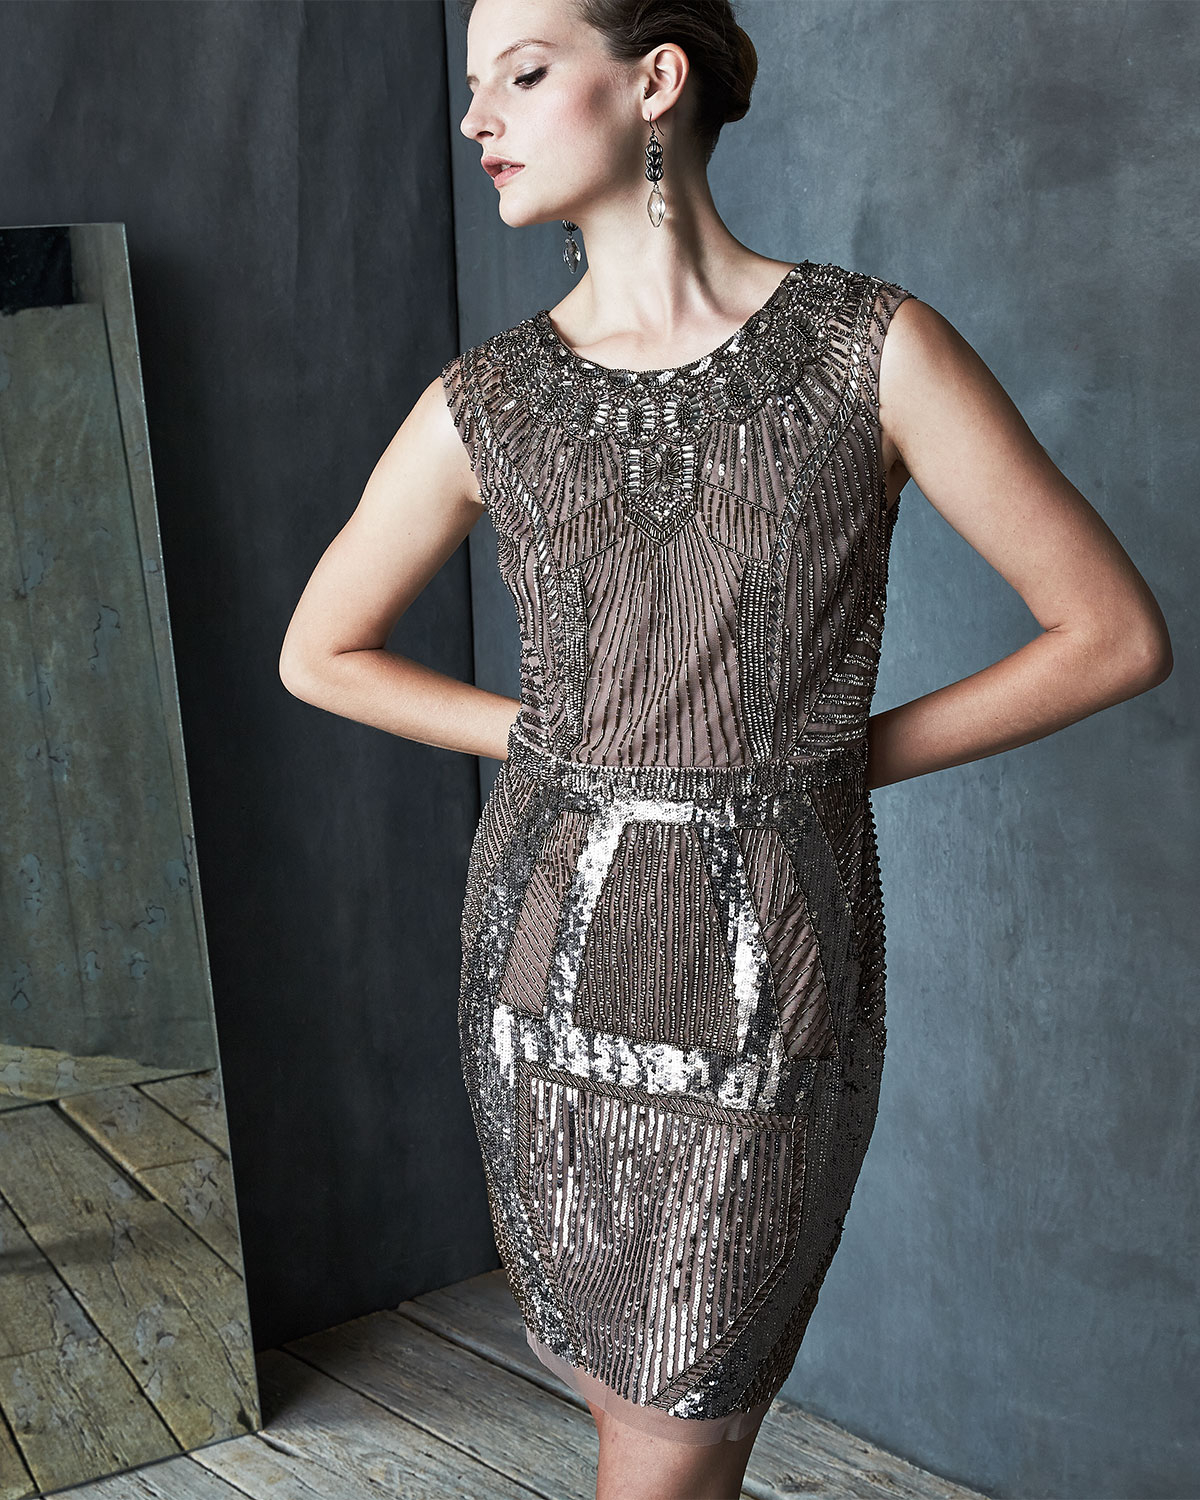 Lyst - Aidan Mattox Beaded & Sequined Art Deco Cocktail Dress in Natural